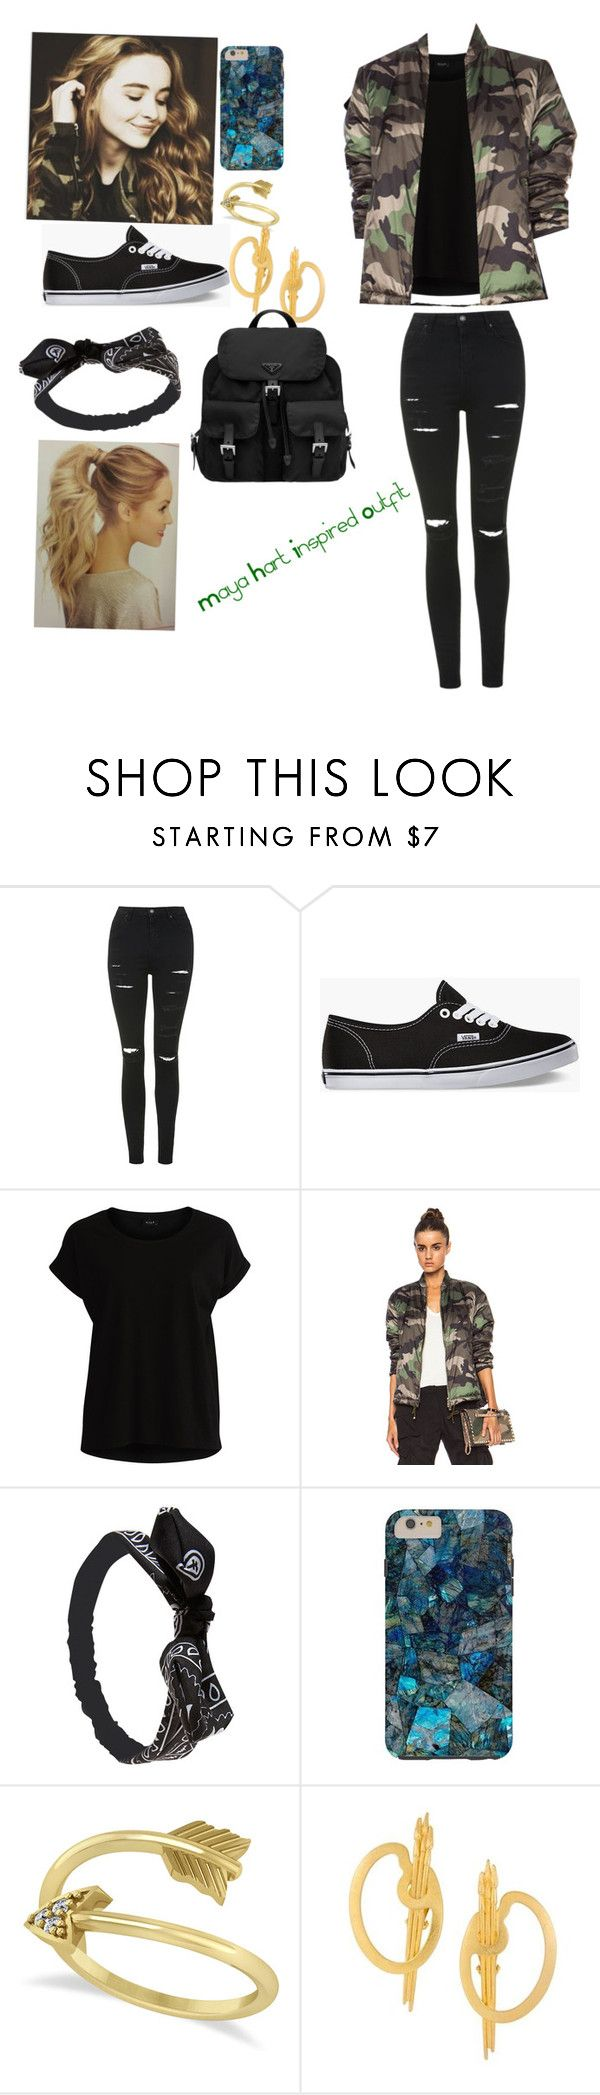 """Maya Hart Inspired Outfit- Girl Meets World"" by booknerdjaime16 ❤ liked on Polyvore featuring Topshop, Vans, VILA, Valentino, Wet Seal, Allurez, Karl Lagerfeld and Prada"